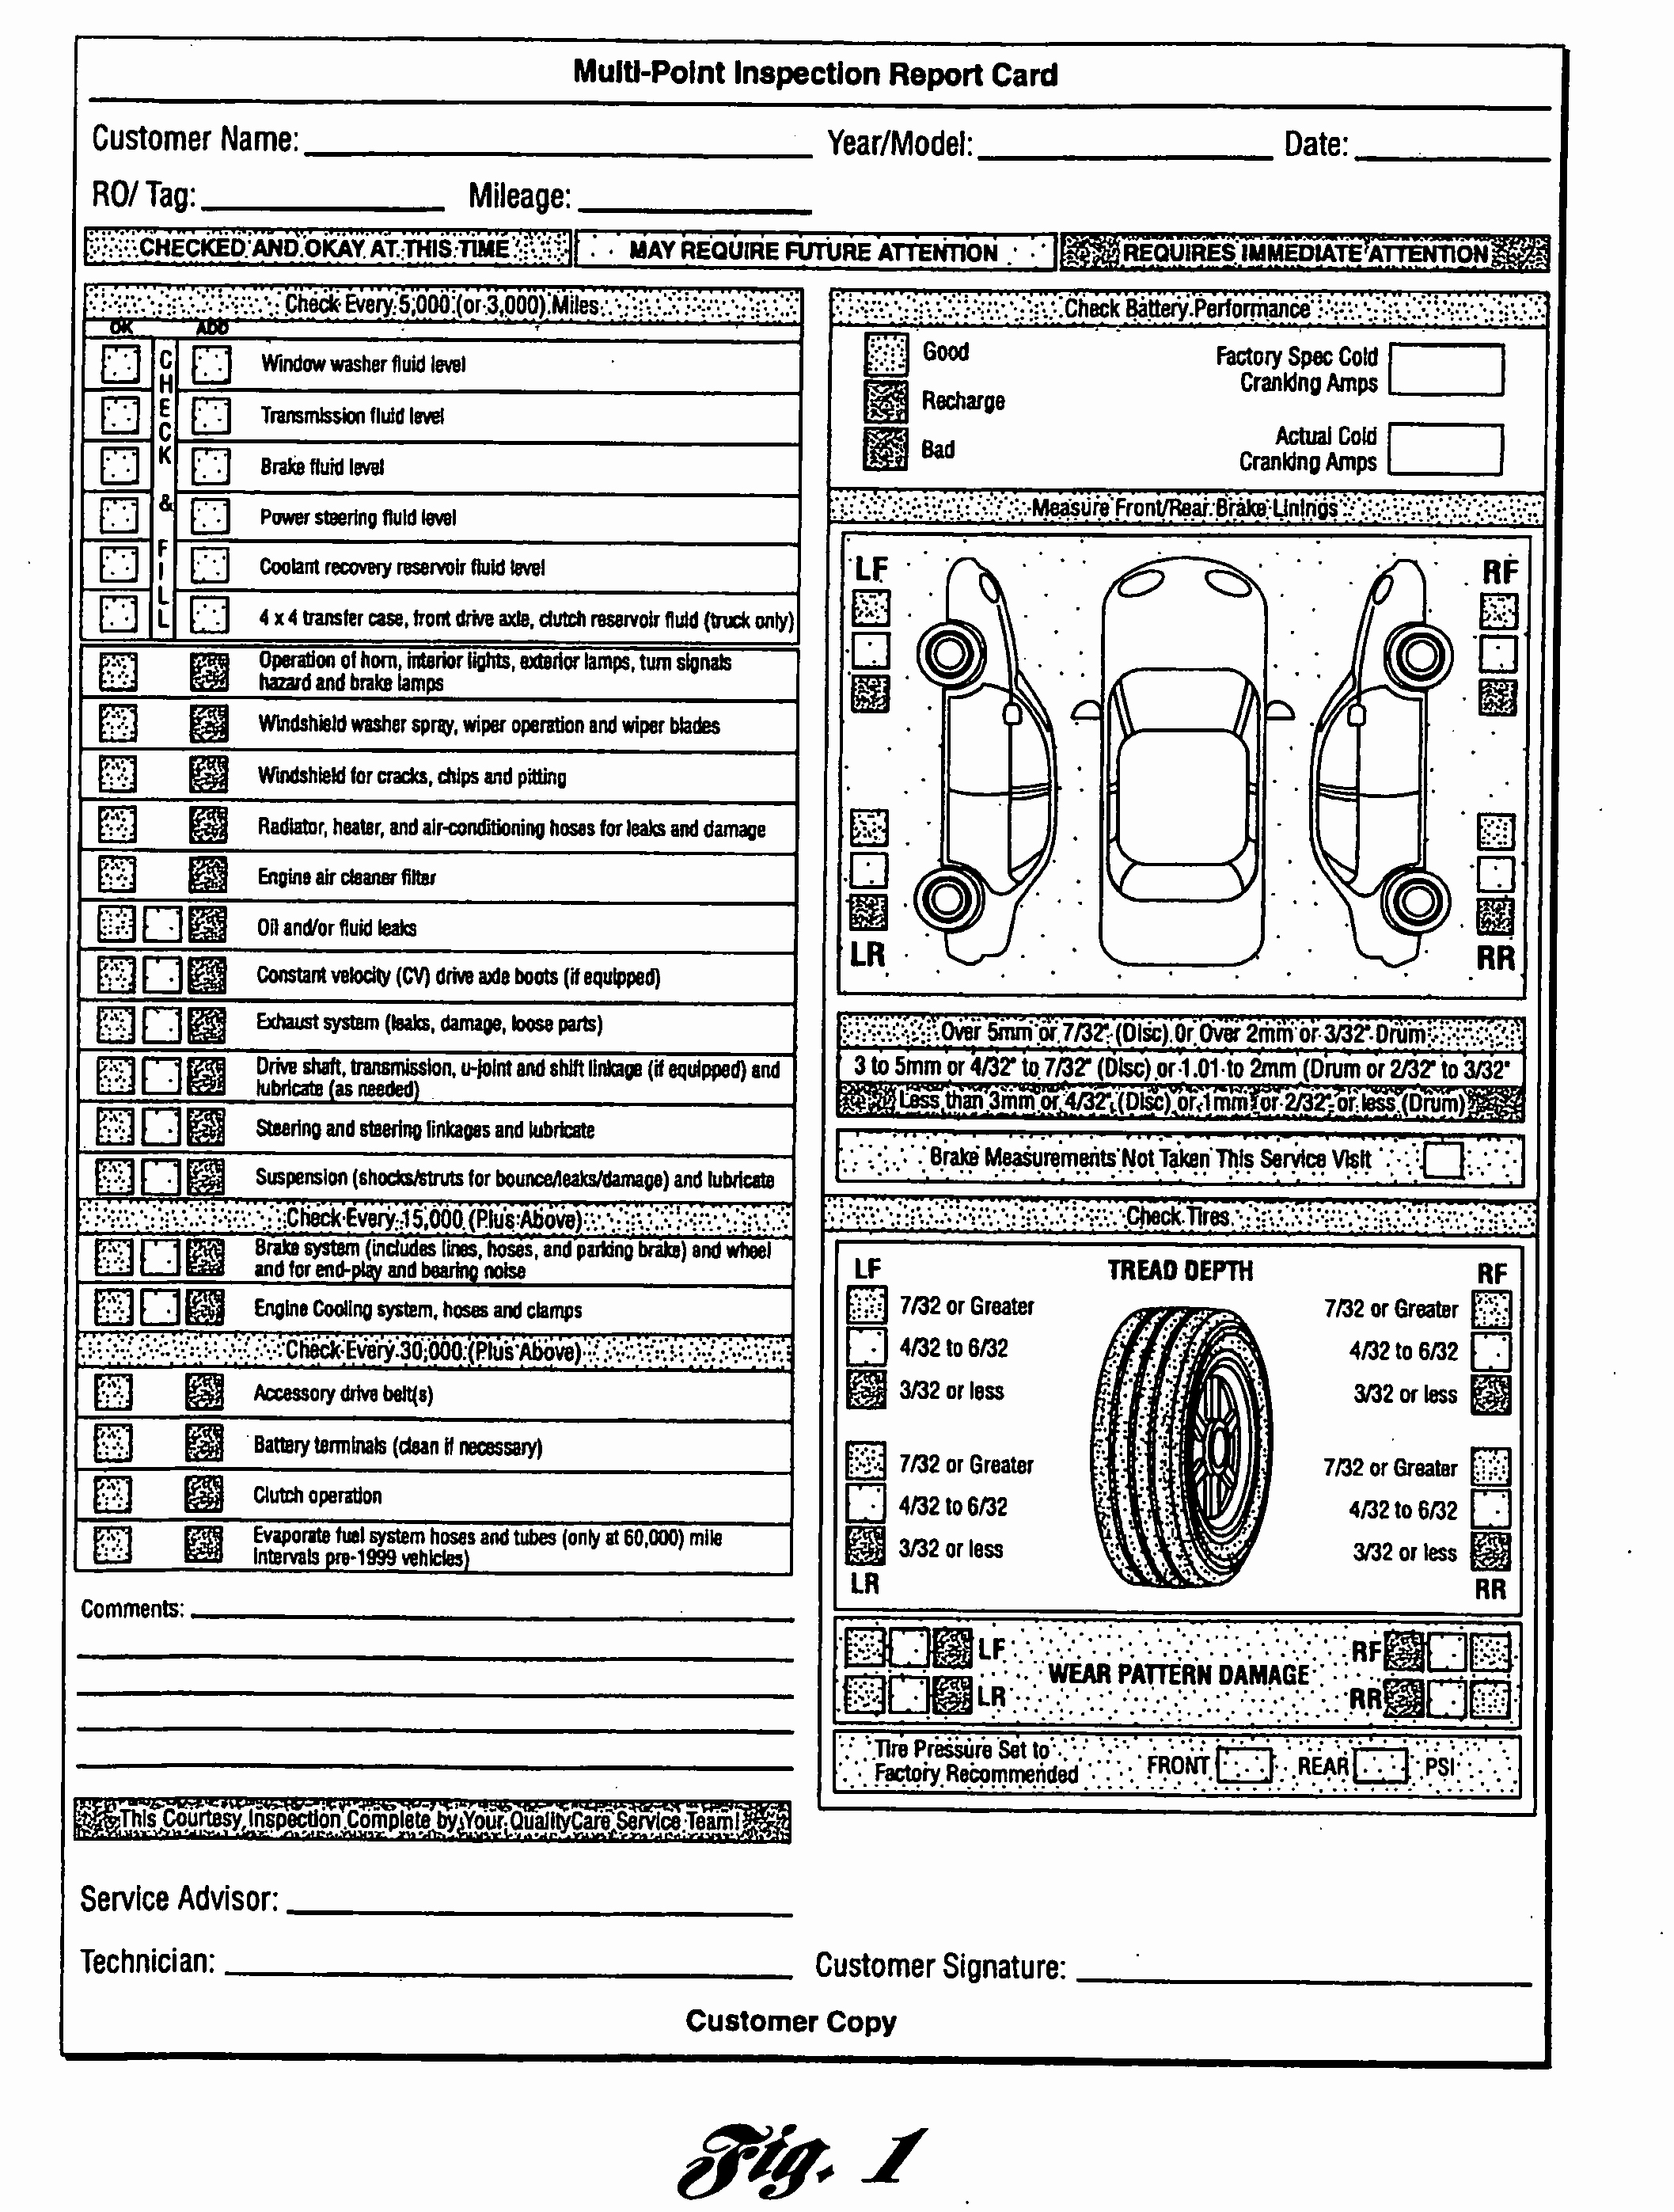 Auto Repair Checklist Template Inspirational Multi Point Inspection Report Card as Re Mended by ford